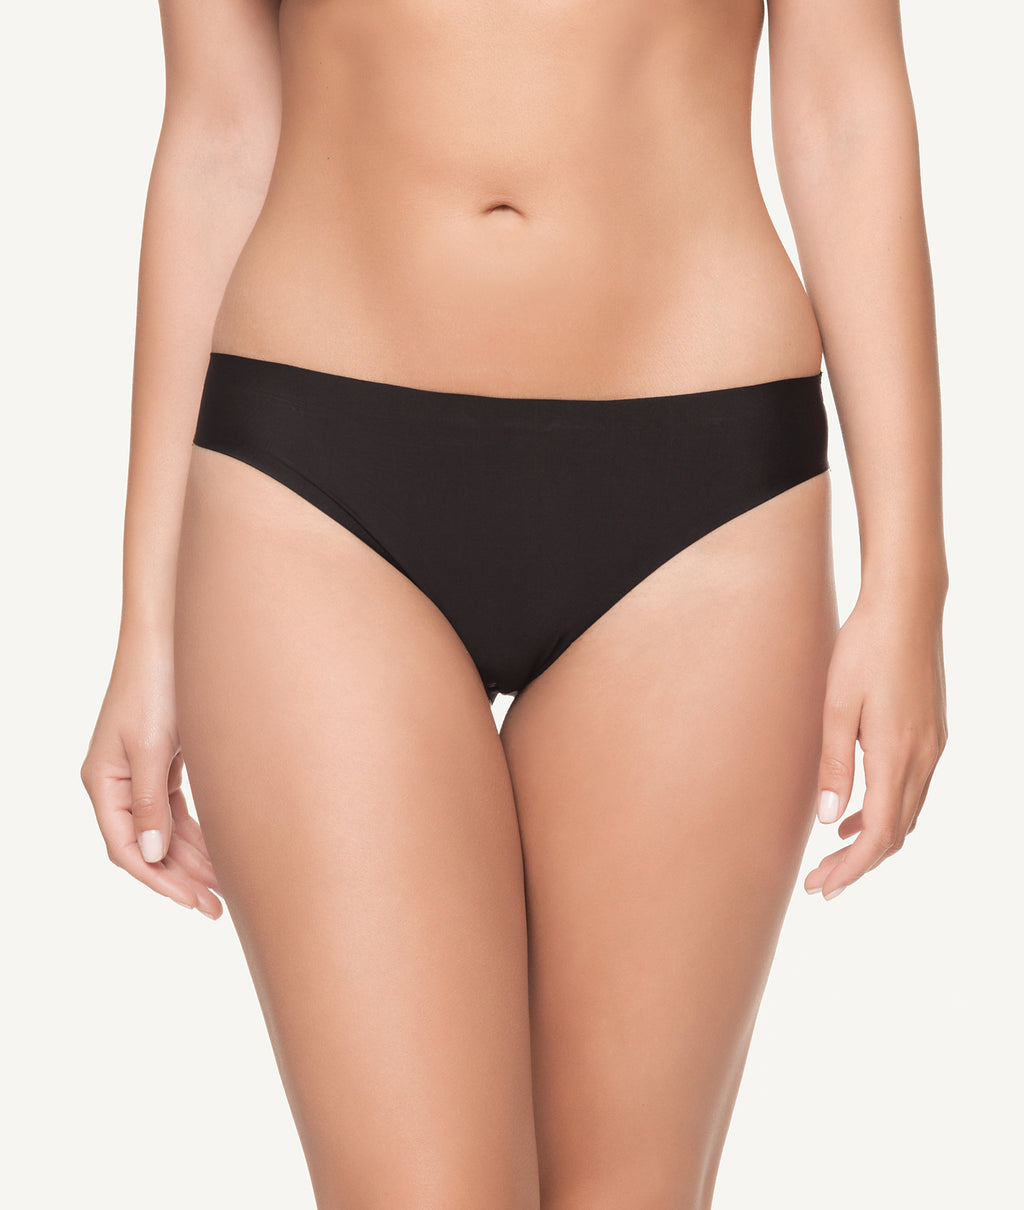 Braga bikini licra invisible con bordados en glúteos frontal - CHANNO Woman